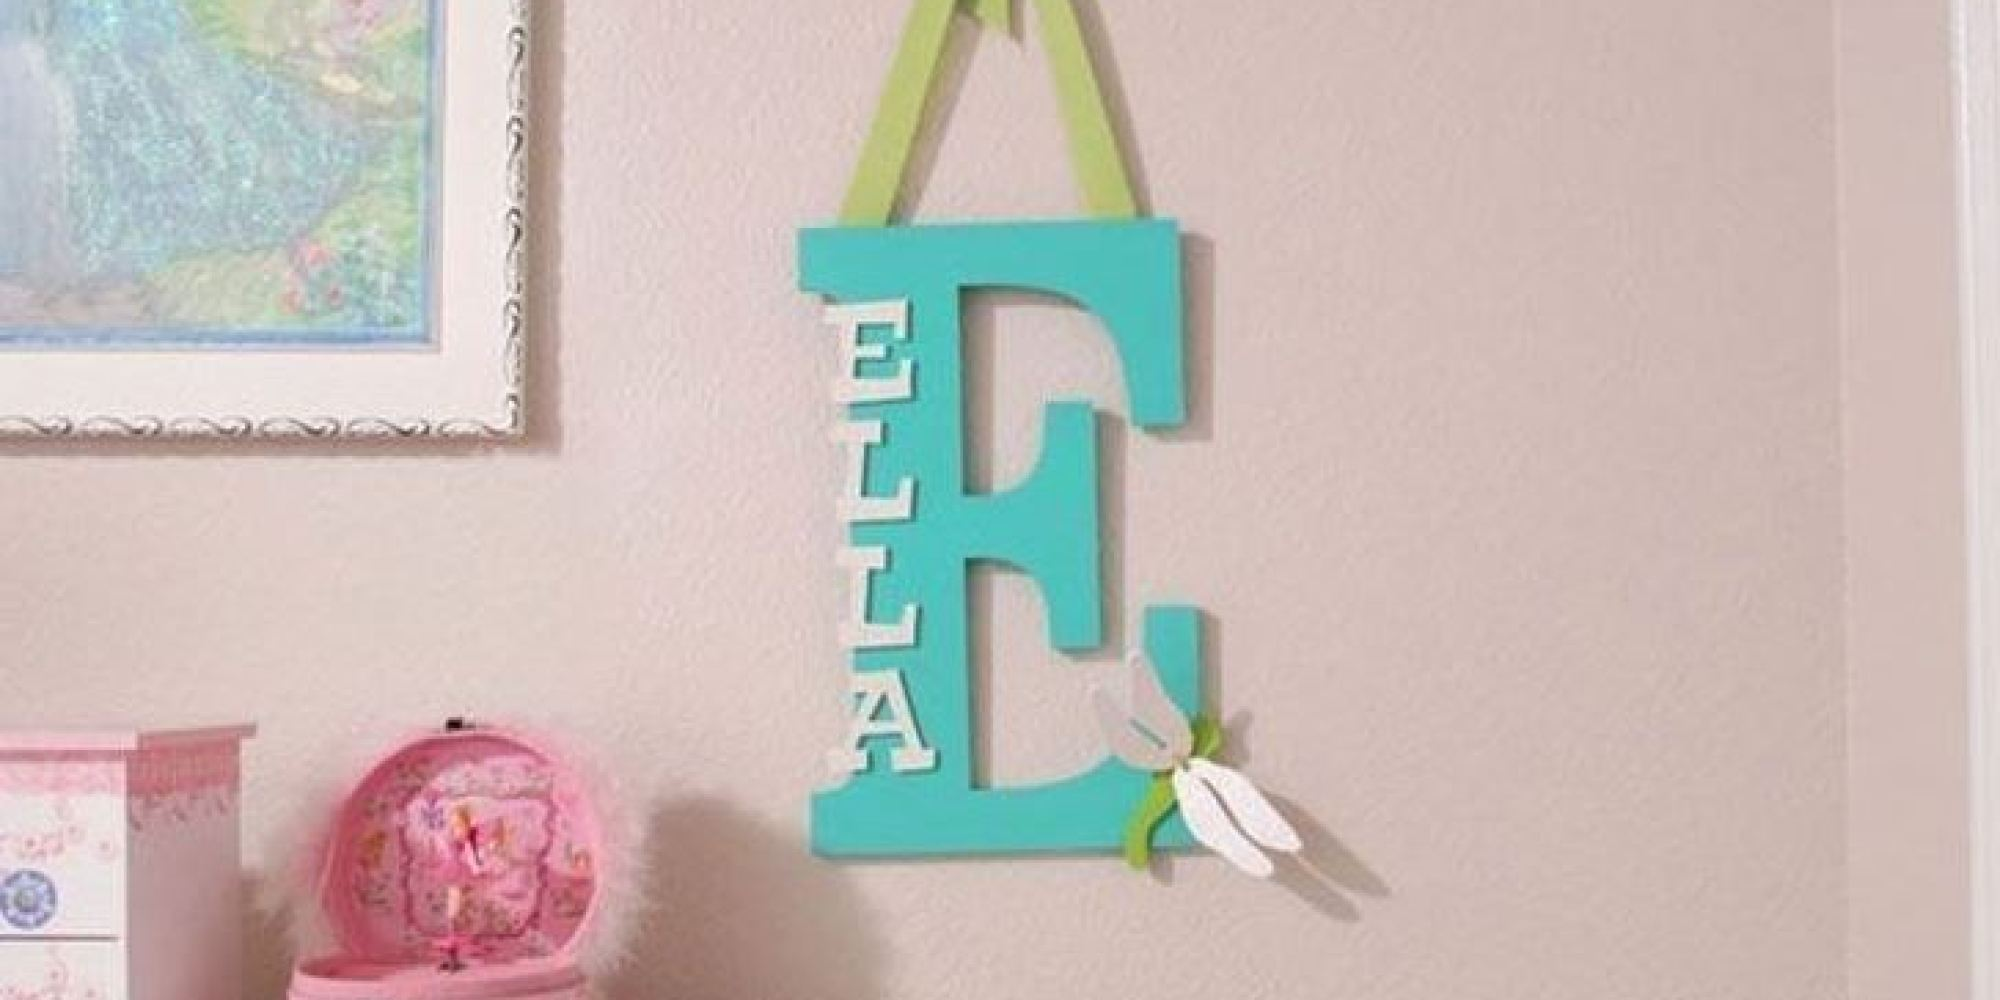 Baby name decor 15 ways to personalize your baby 39 s nursery for Baby name decoration